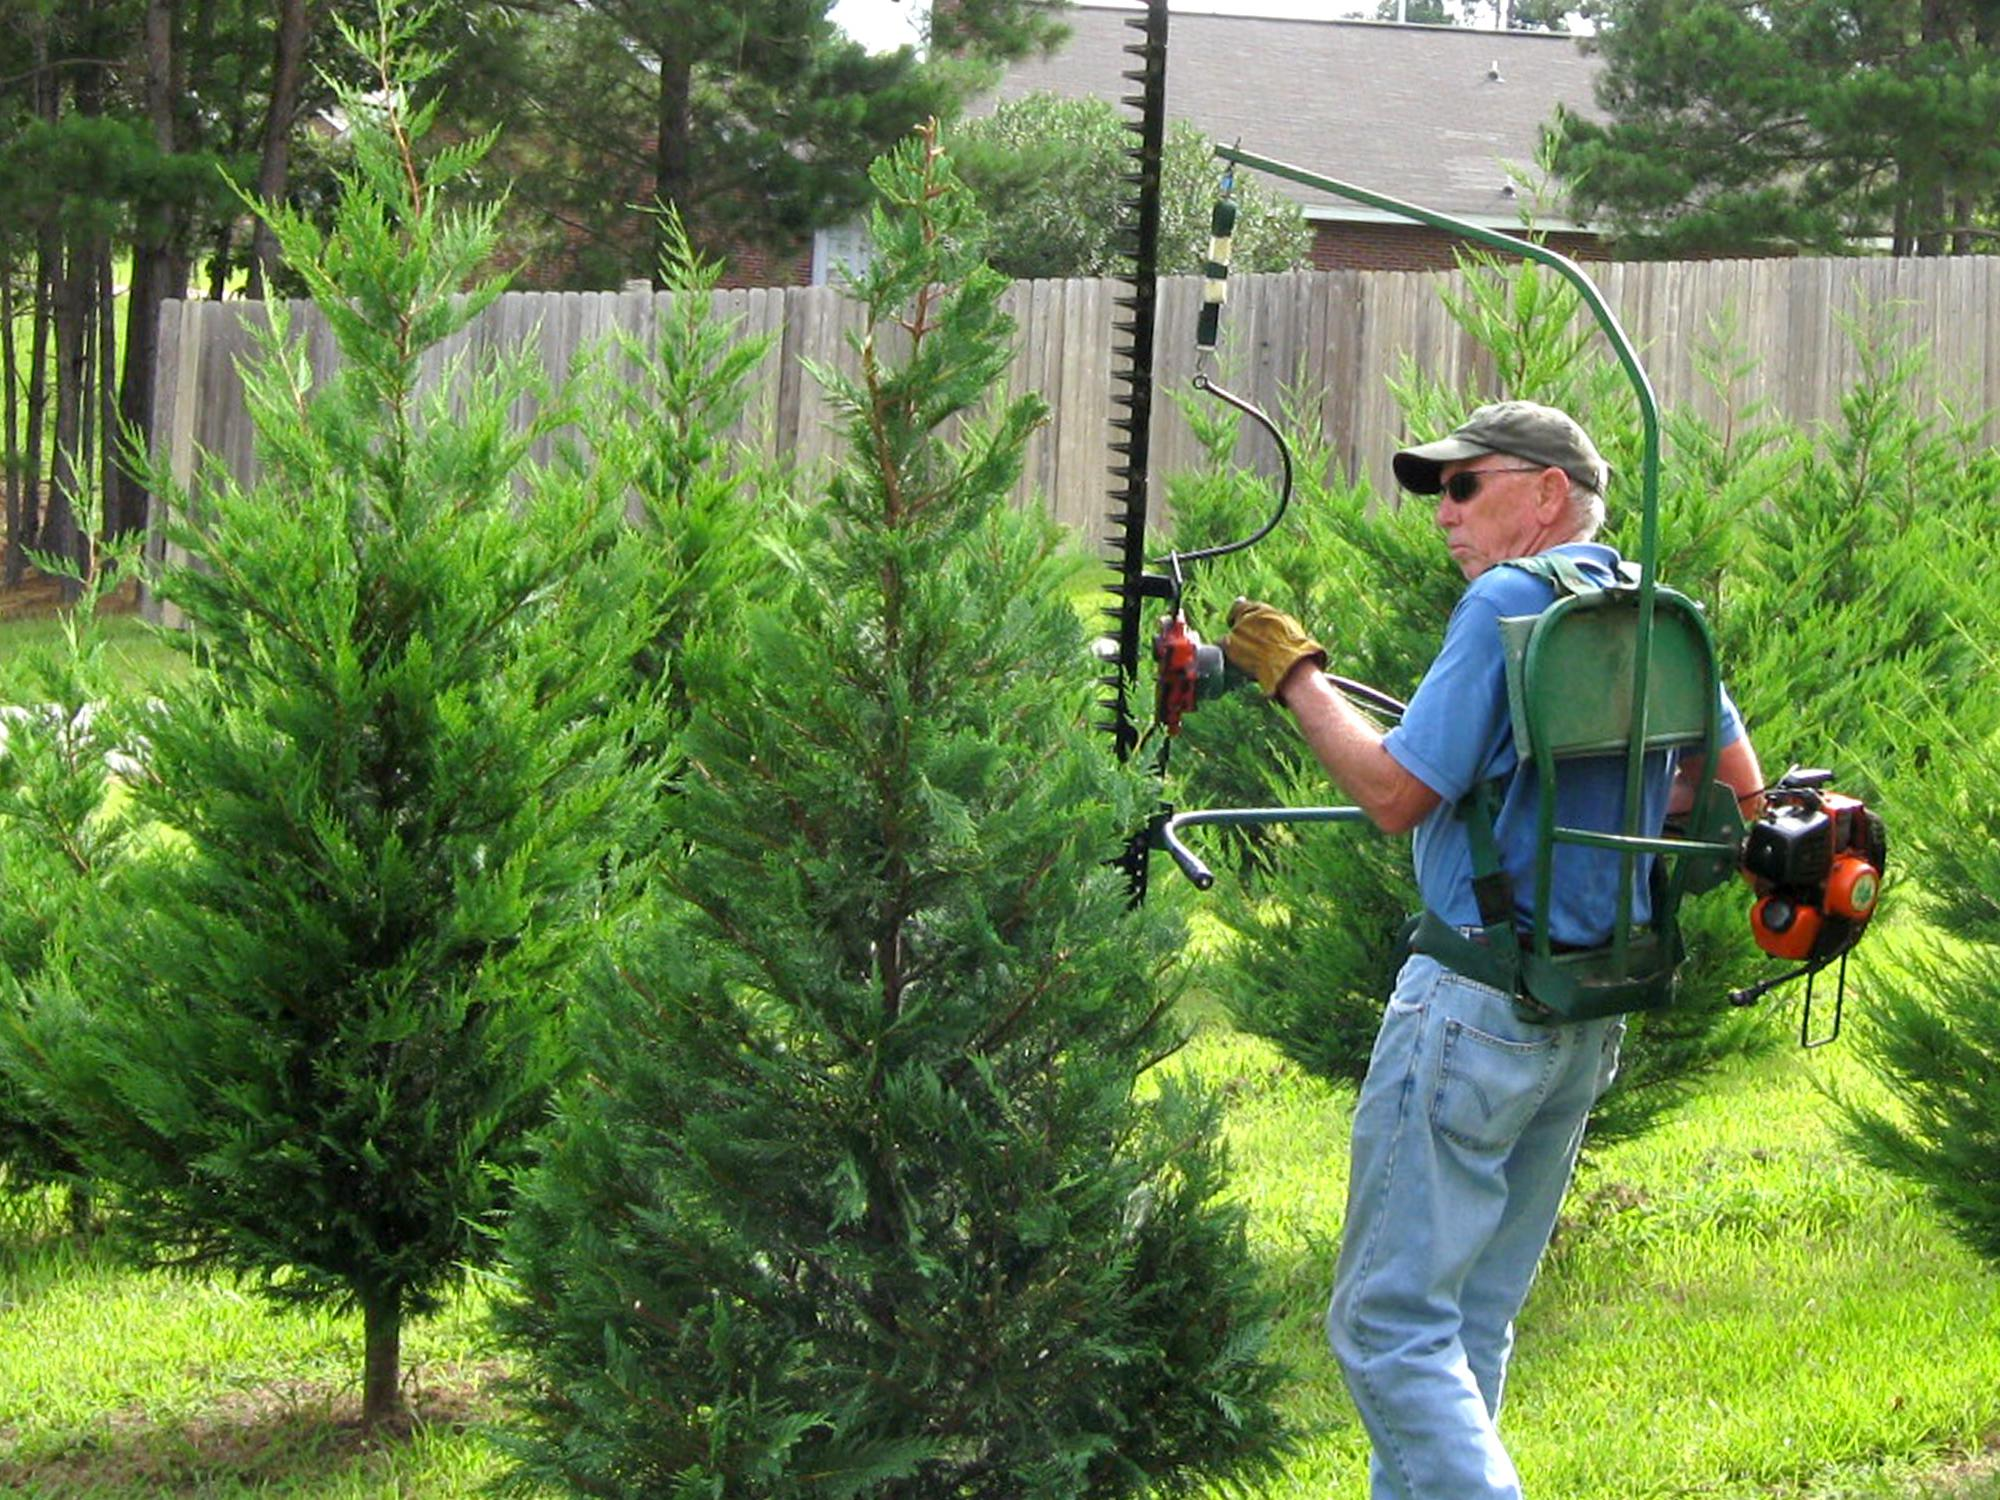 christmas tree farmer bob shearer of purvis uses a shearing machine to trim trees - Buy Christmas Tree